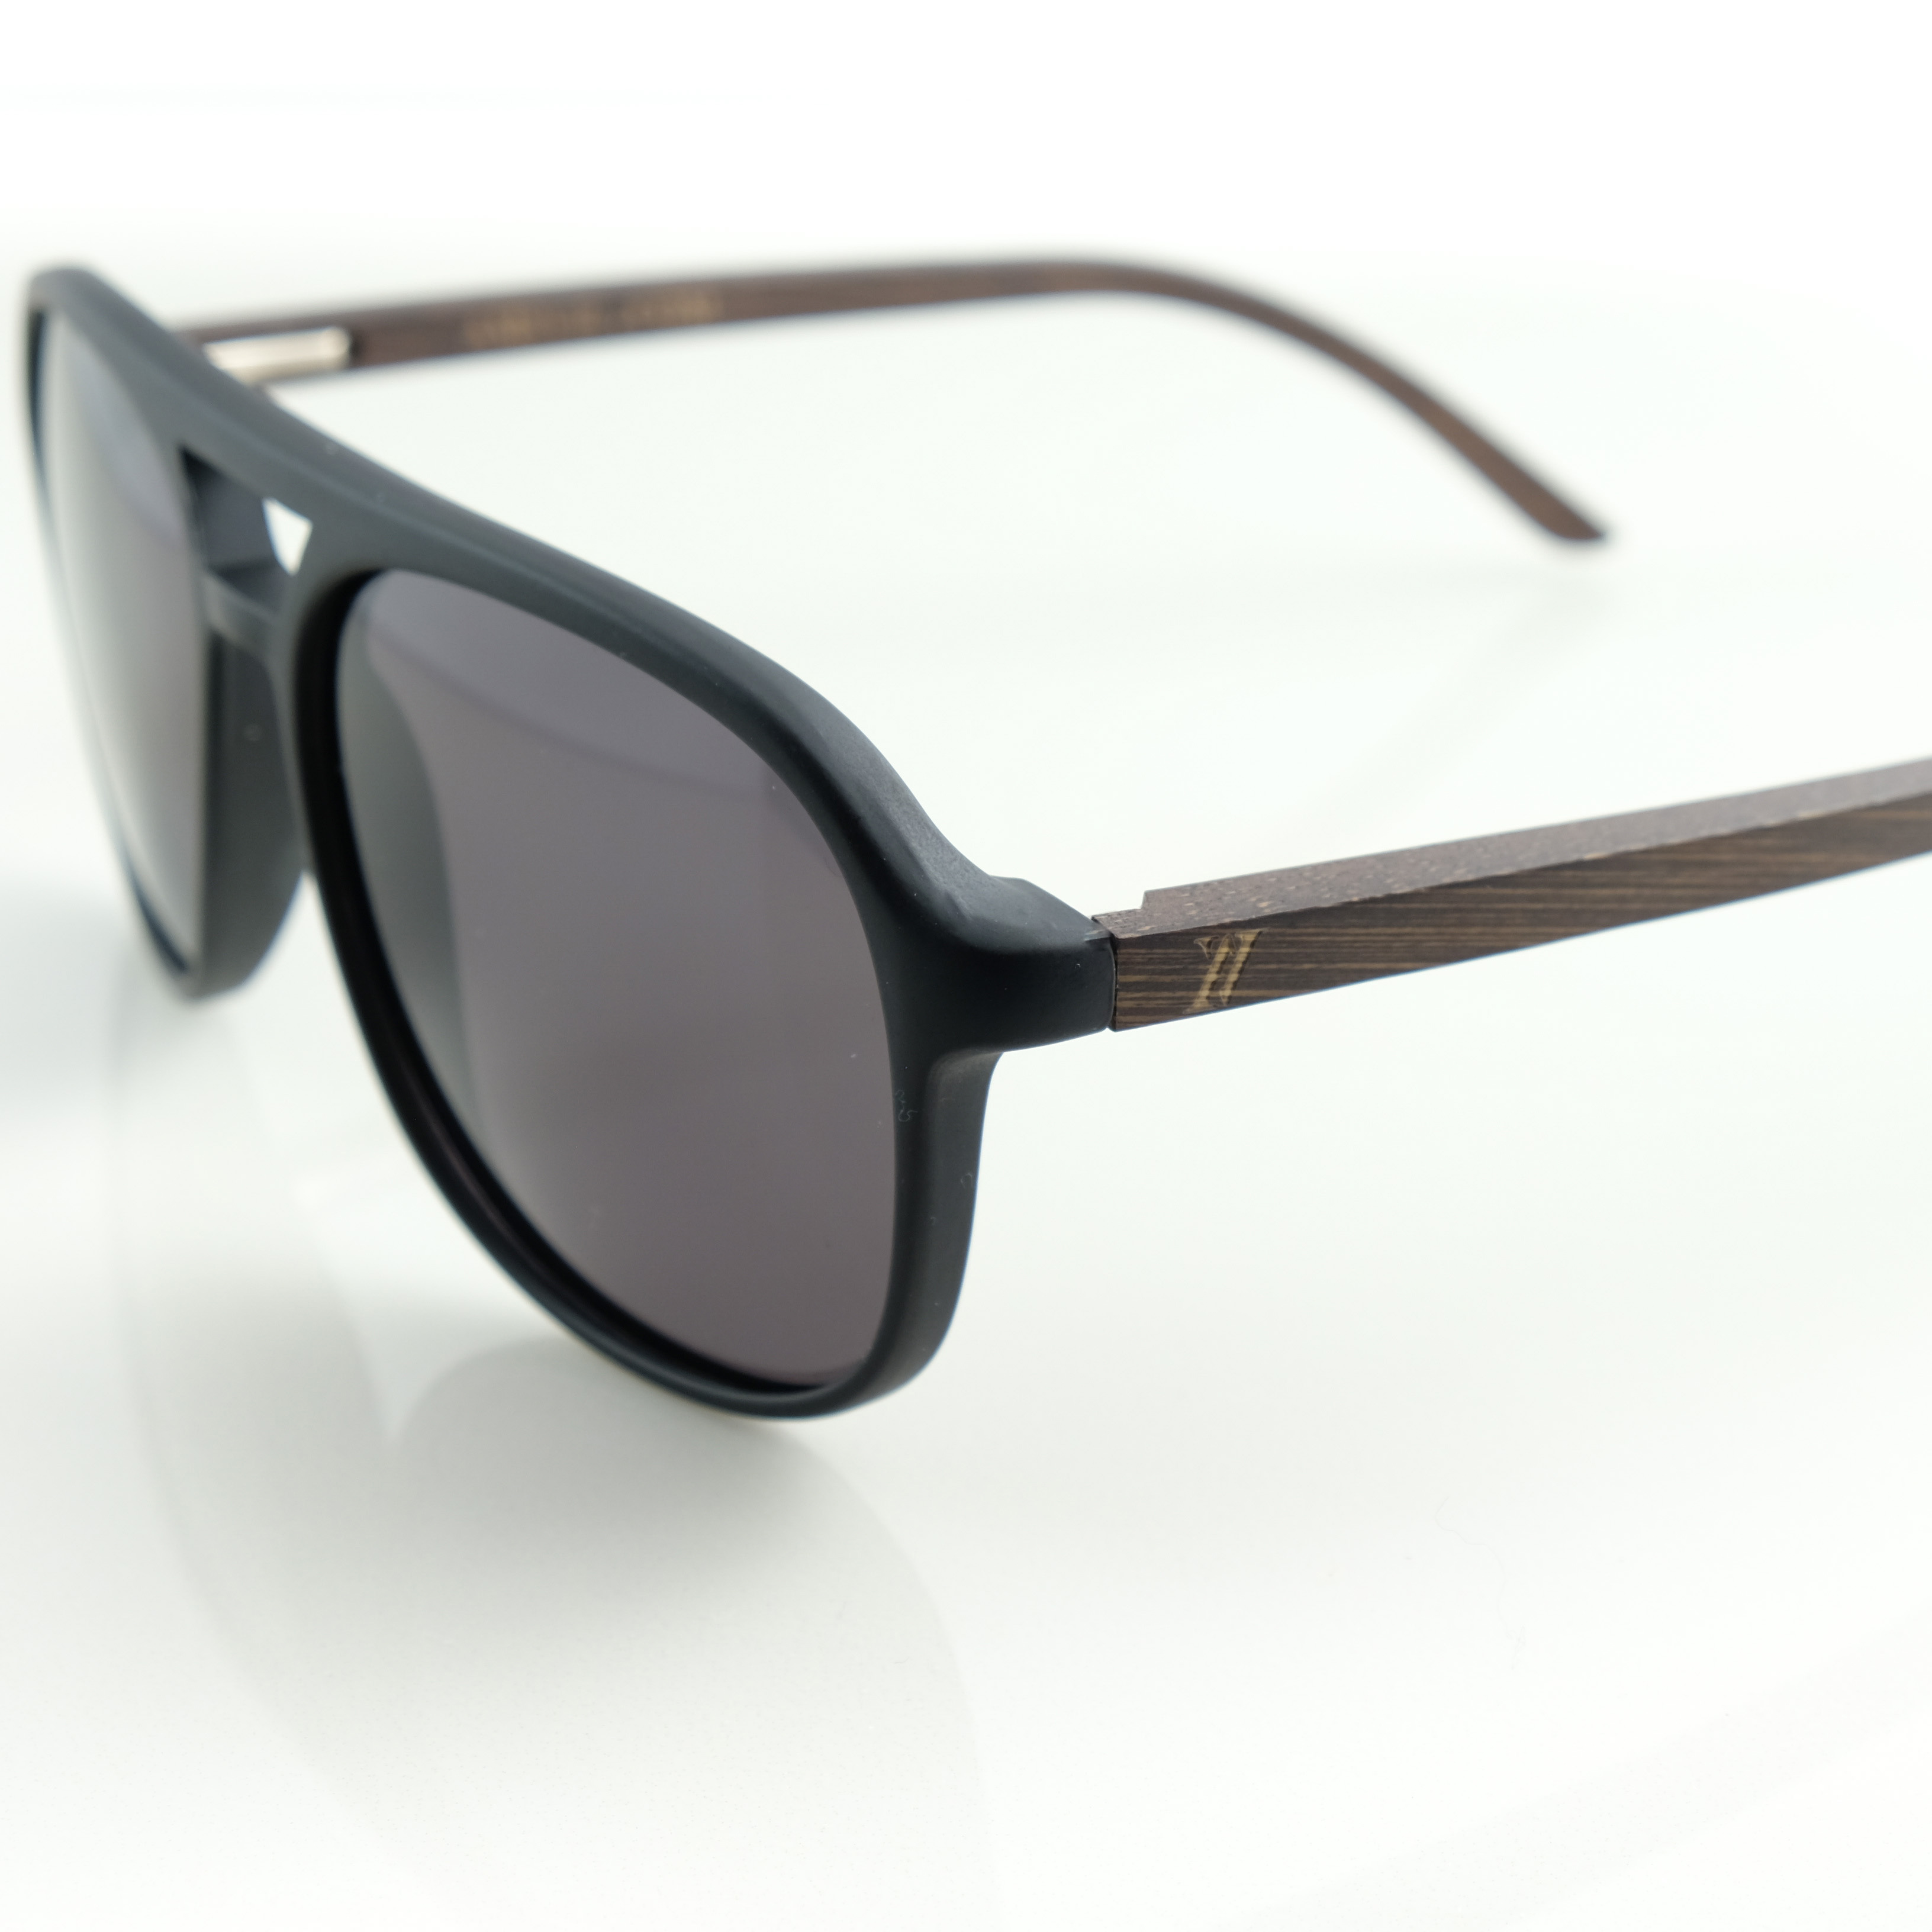 571564774b Bamboo sunglasses for men and women